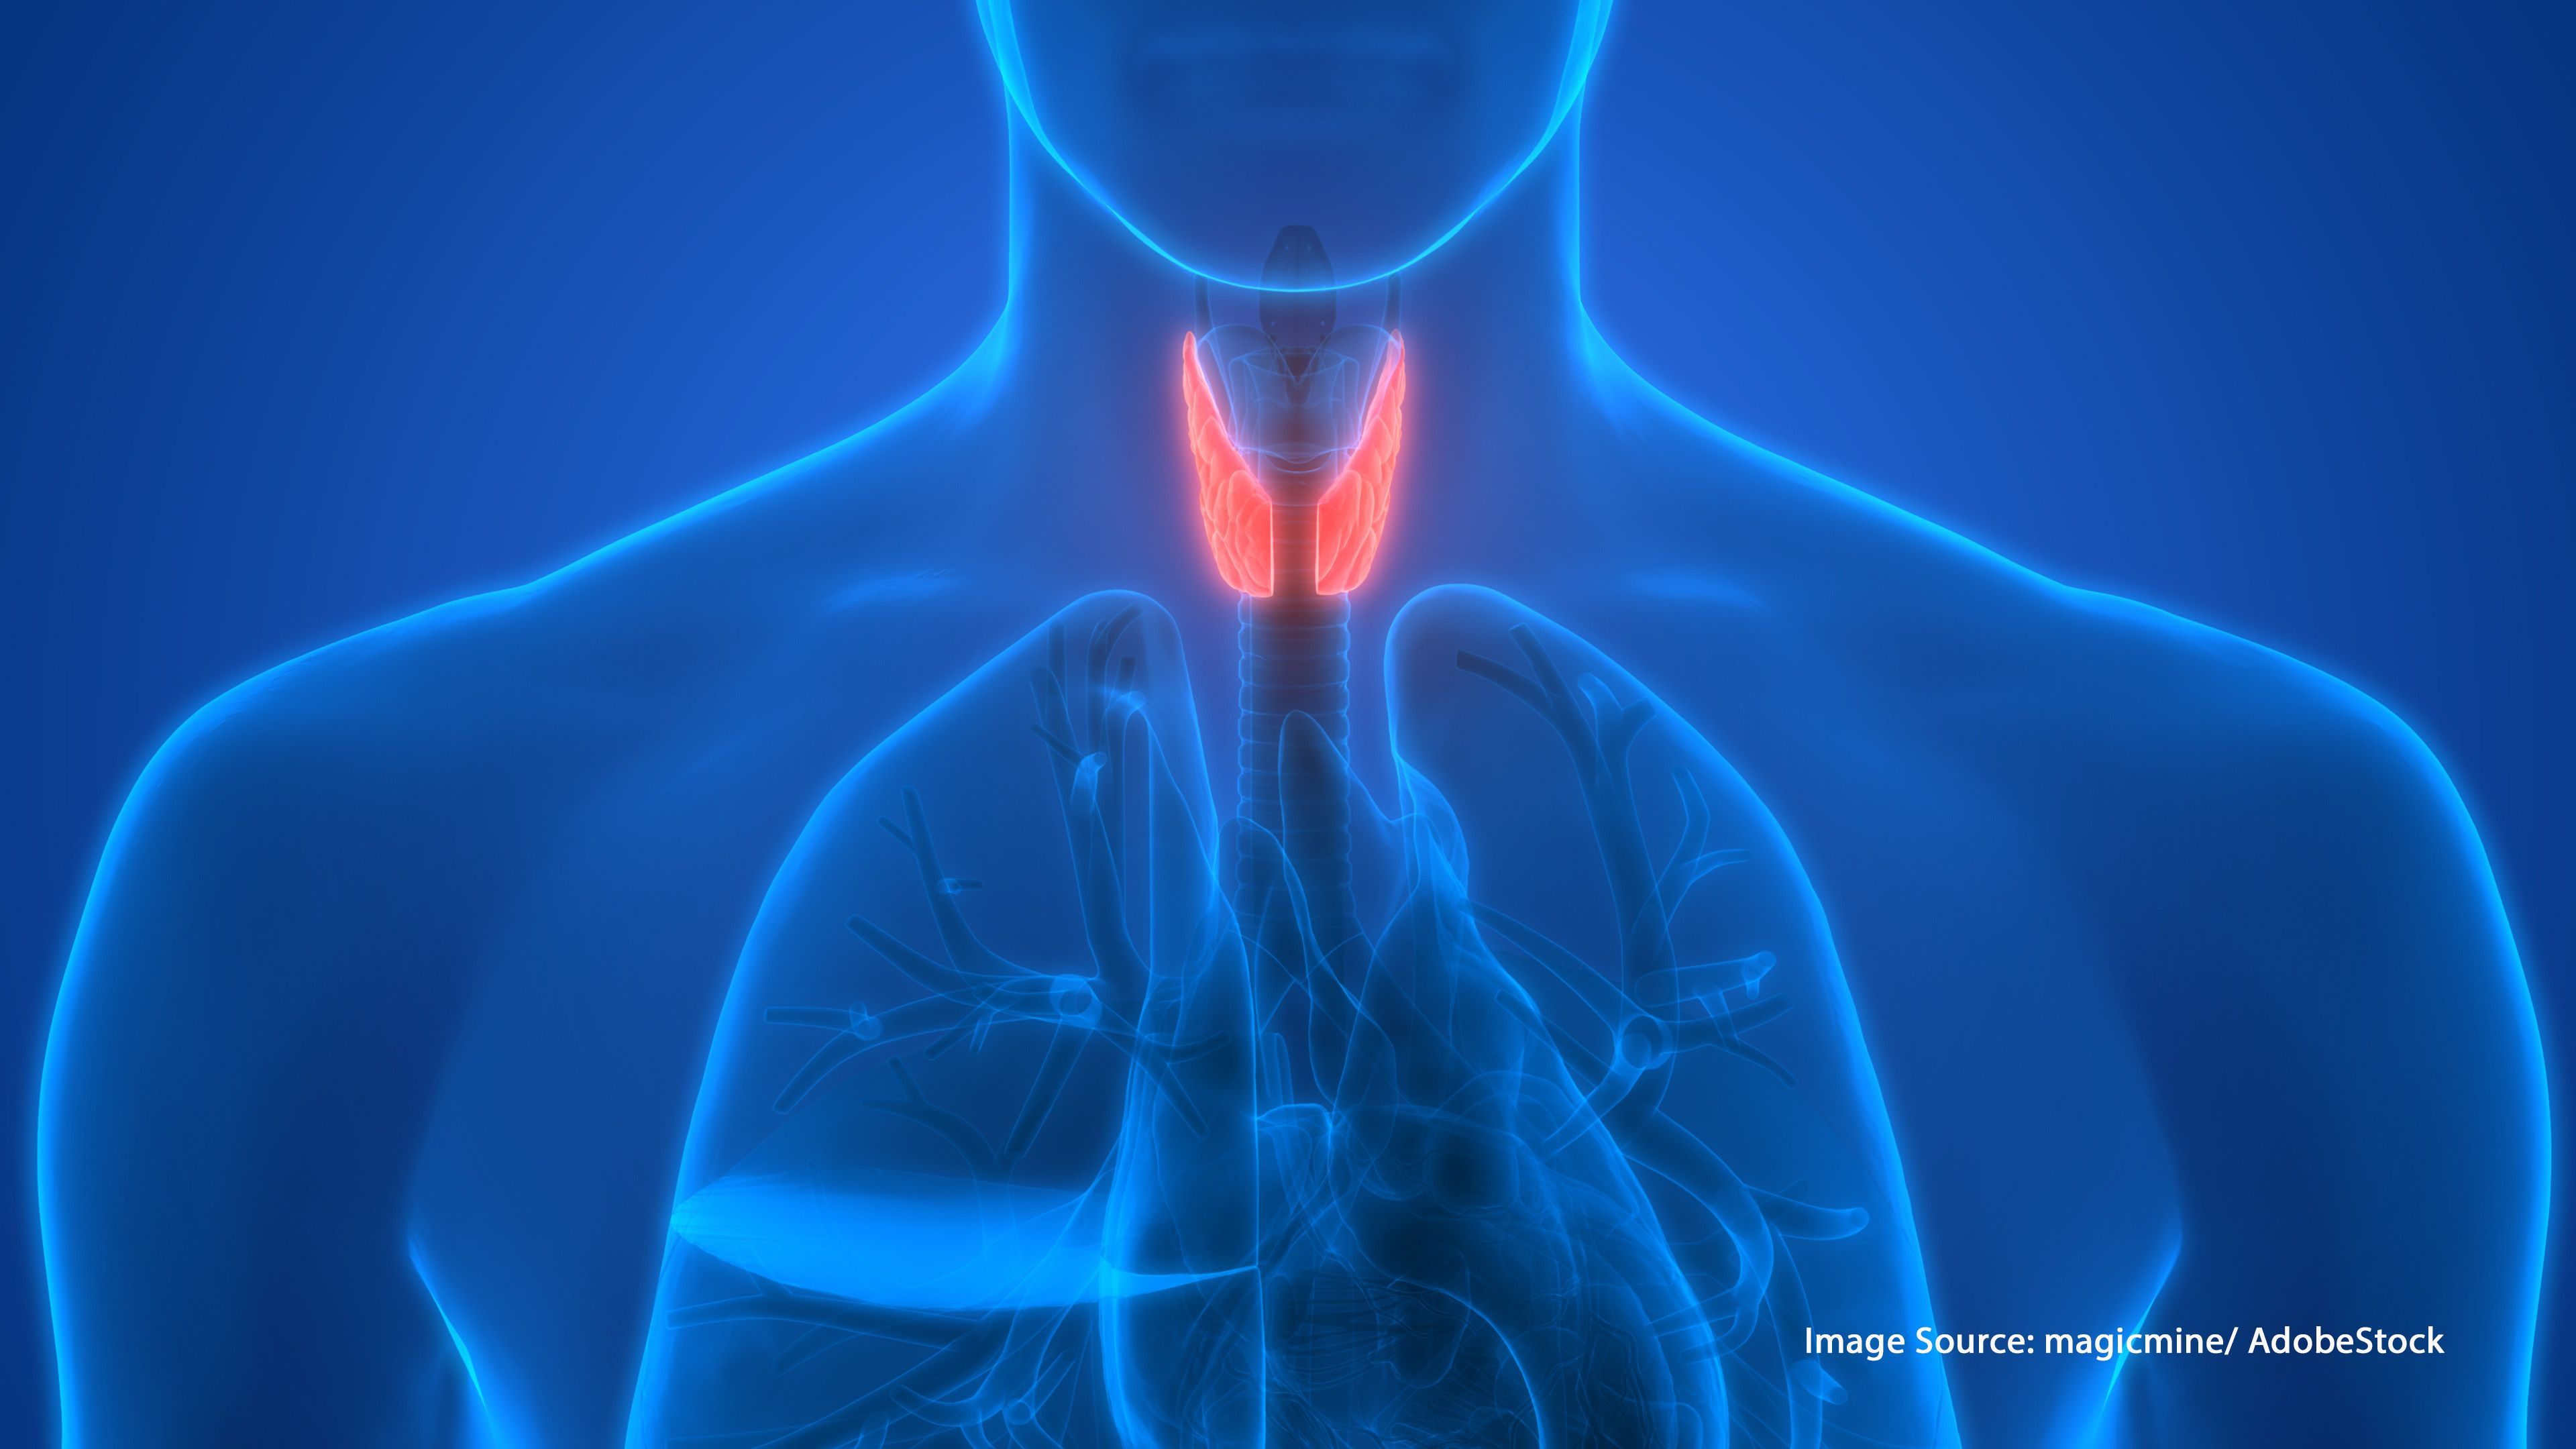 Could Over Screening Be Behind Higher Thyroid Cancer Rates Among 9